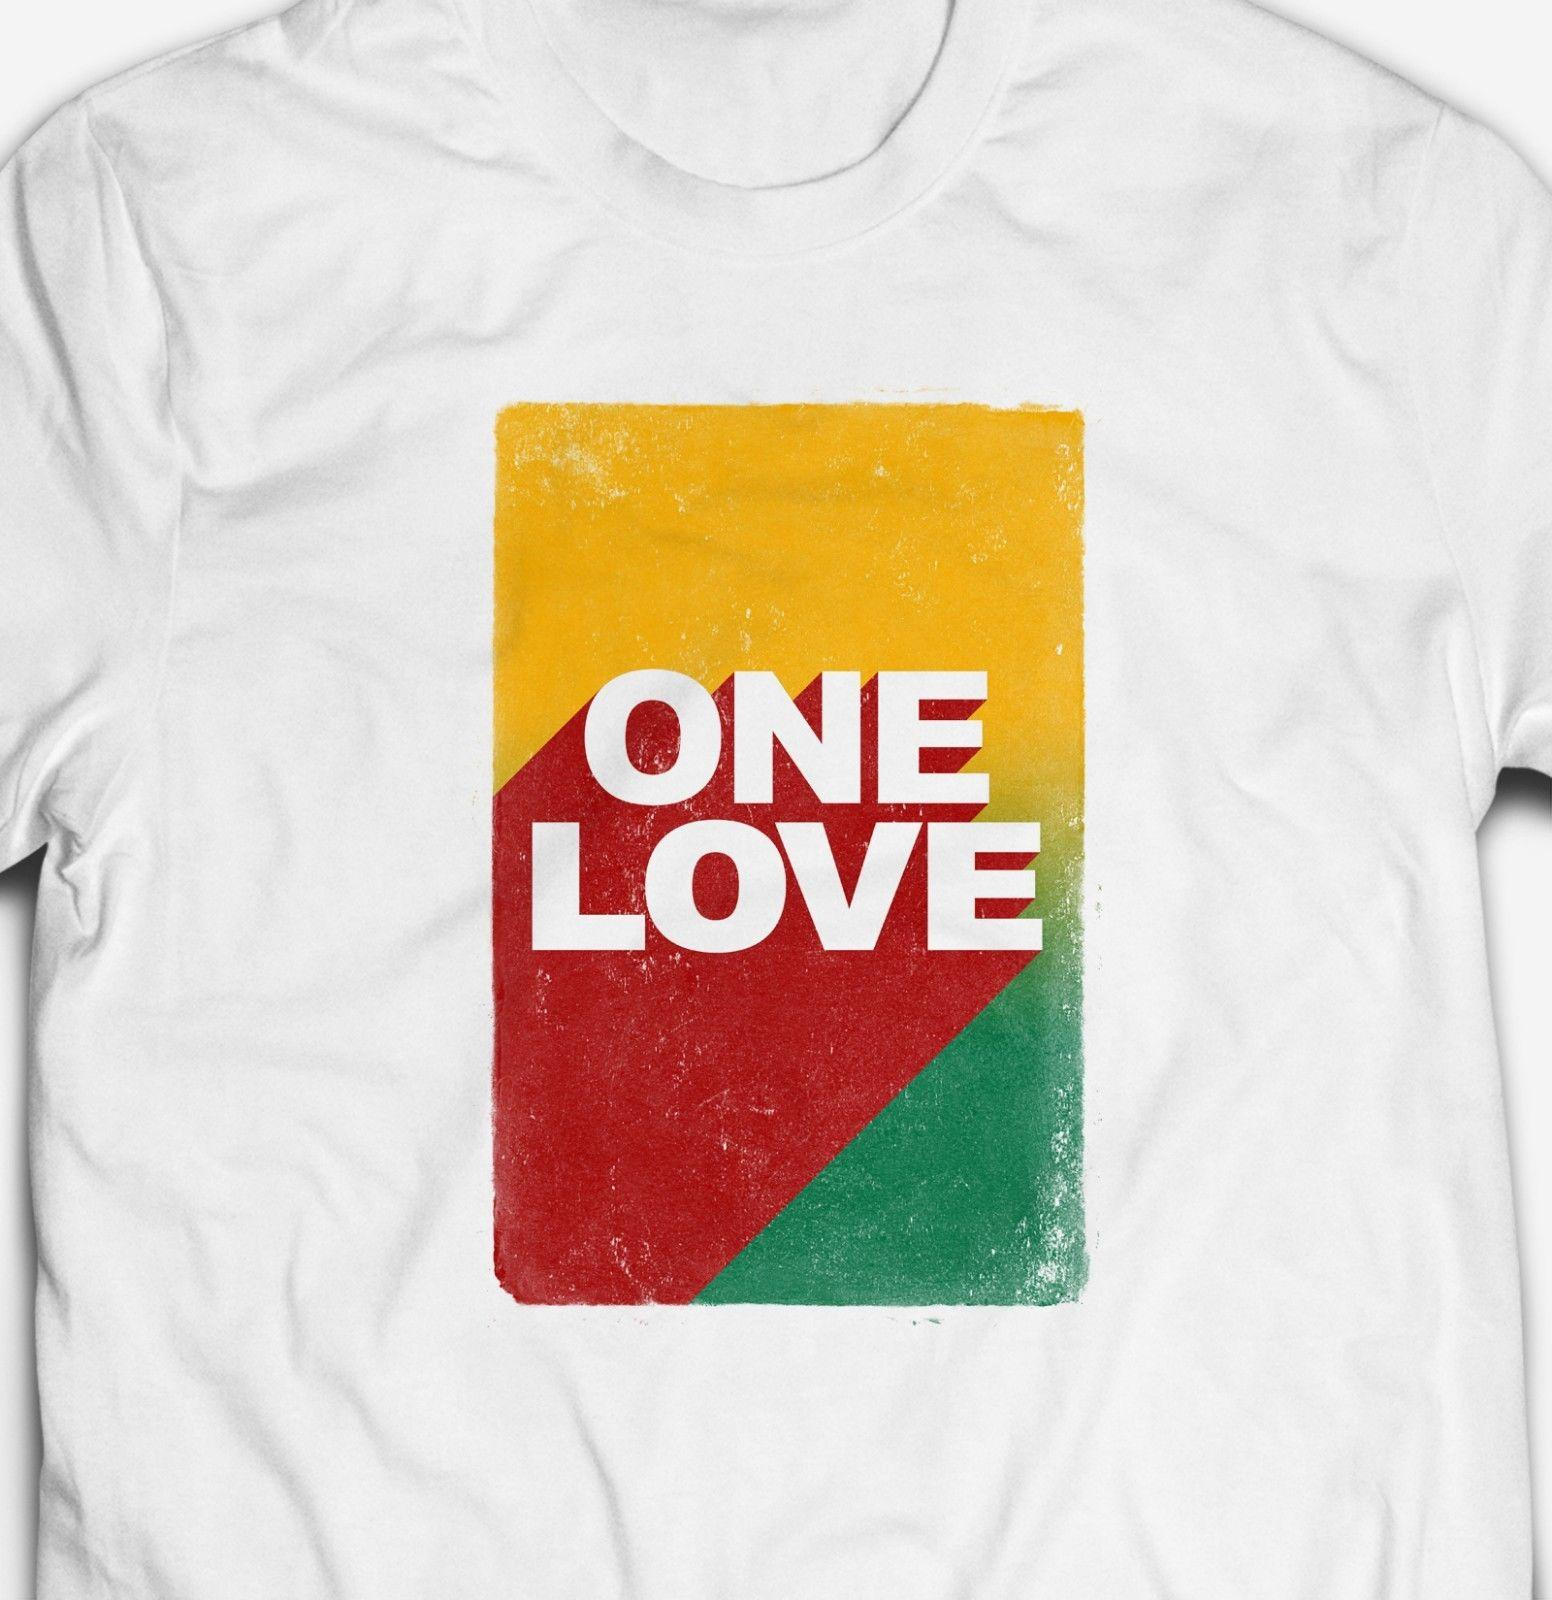 JAMAICAN ONE LOVE REGGAE RASTA JAMAICA DUB MUSIC 100%cotton Mens T-shirt  TEE mens pride dark t-shirt